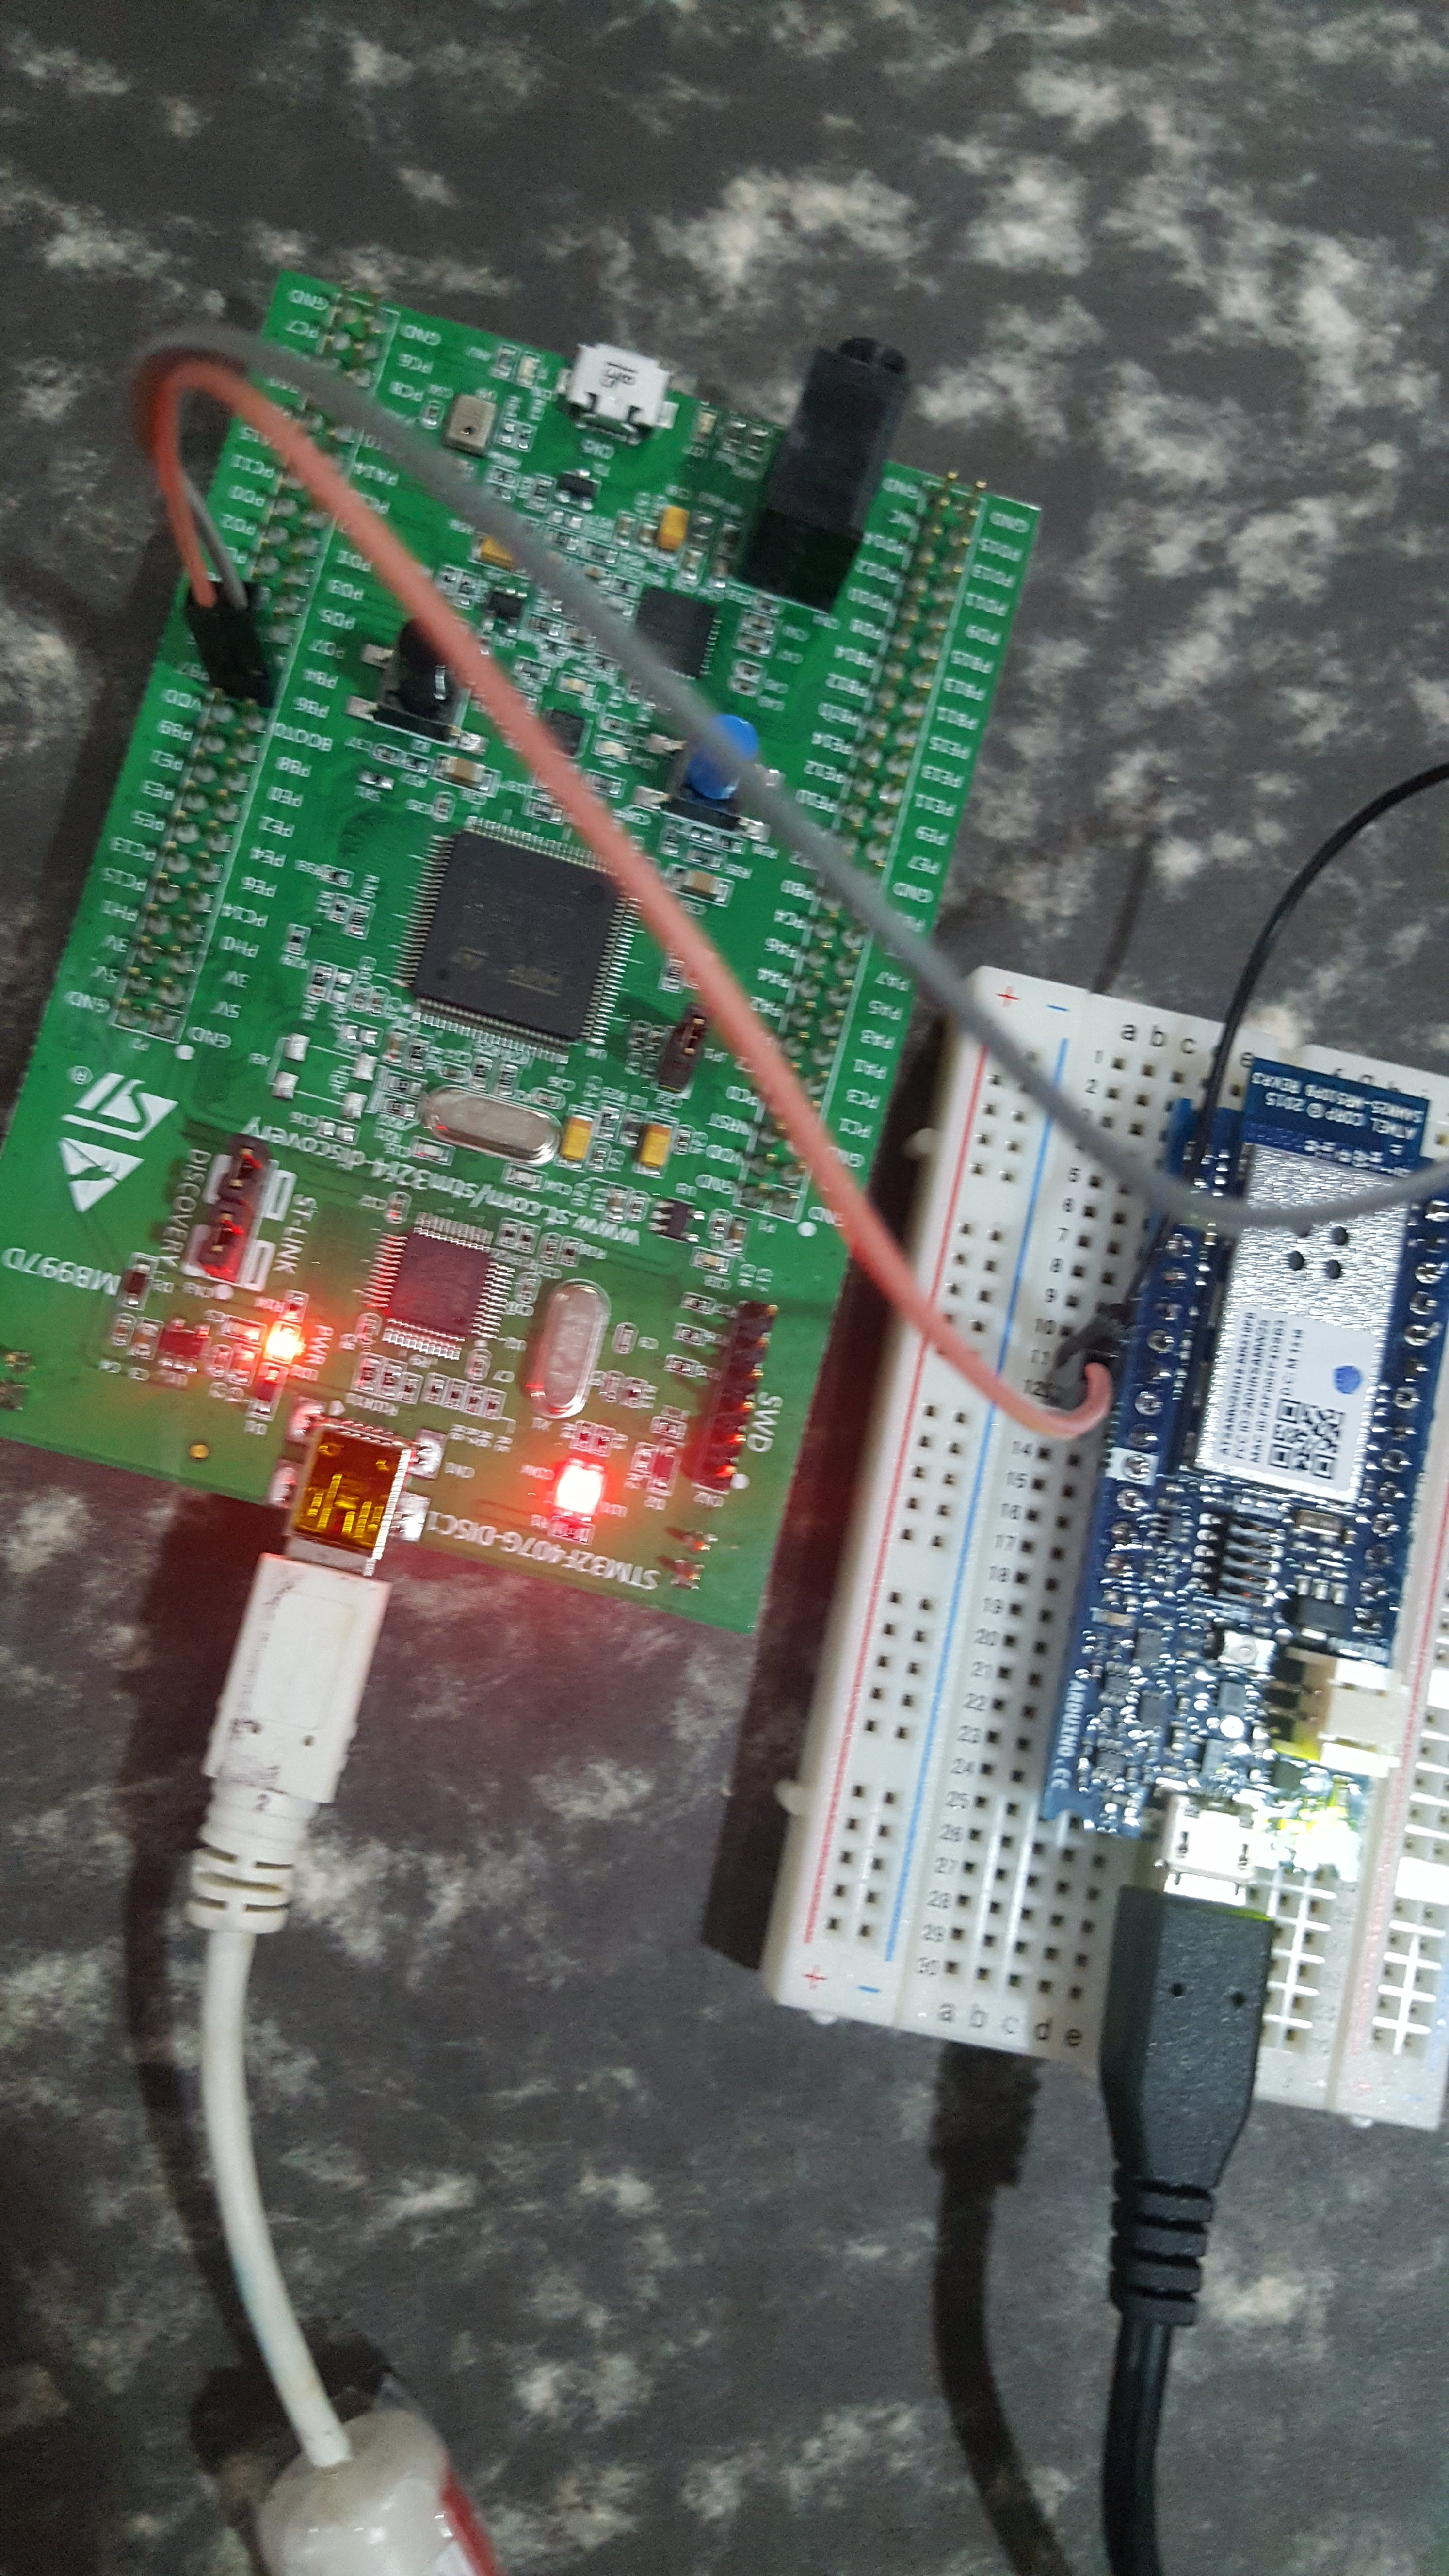 STM32F4 Discovery Board and MKR1000